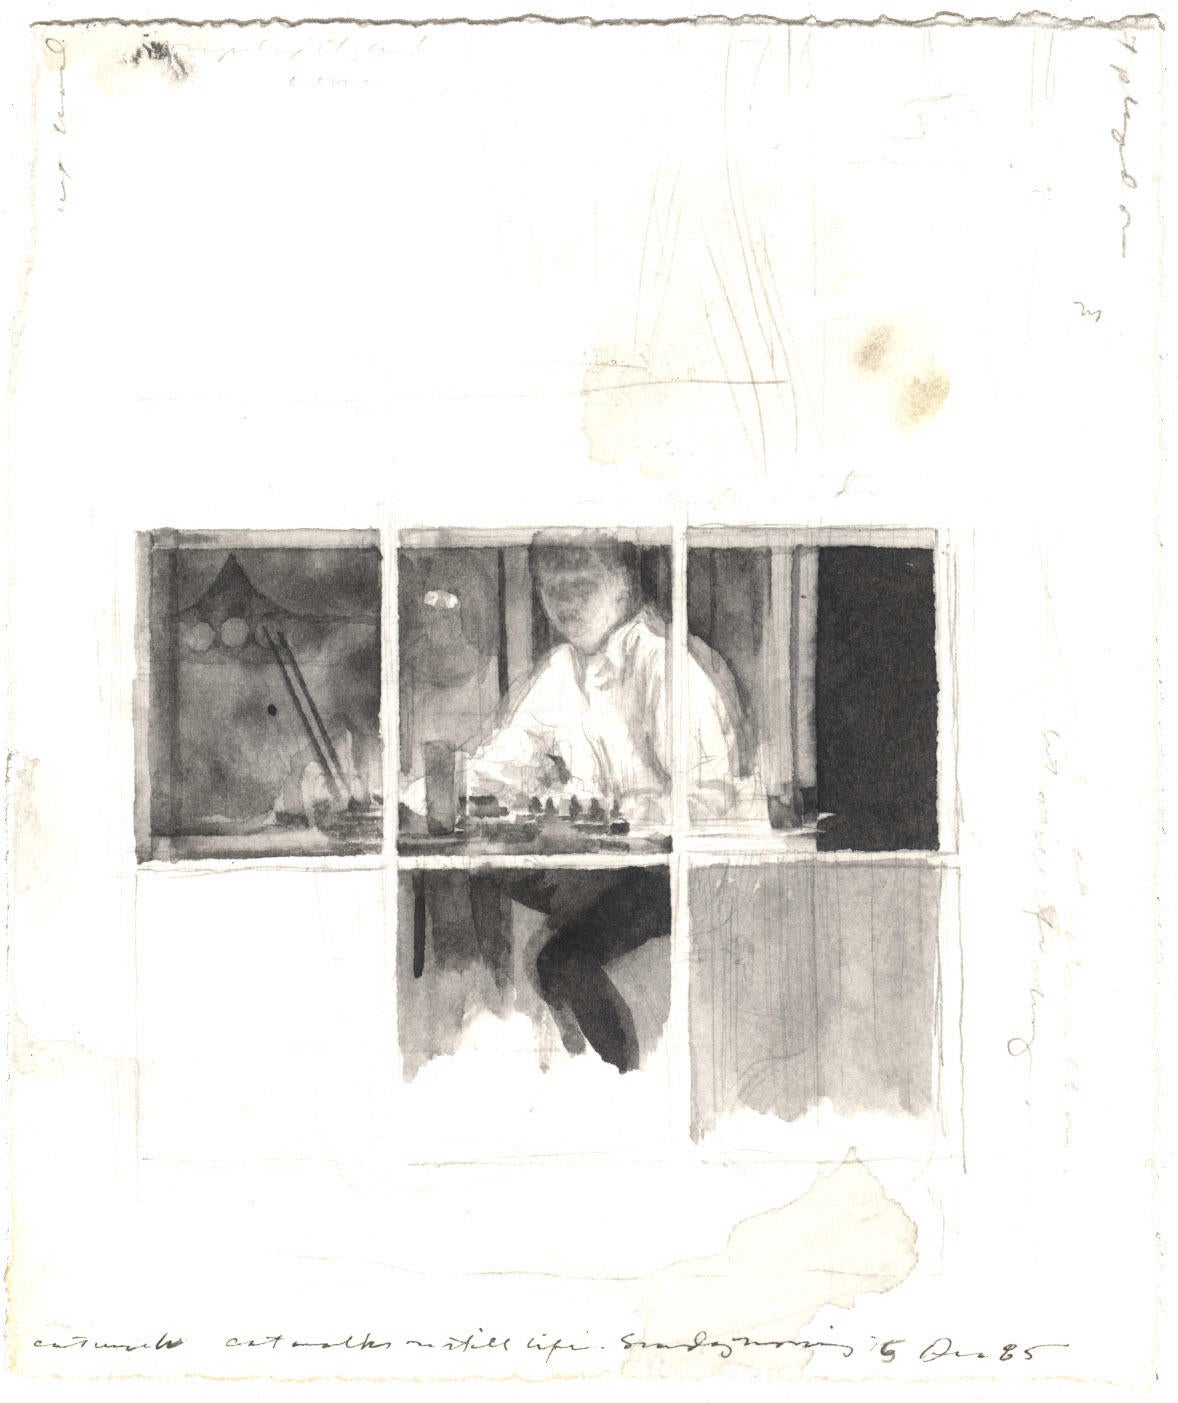 Self-Portrait: 5 December 1985 image